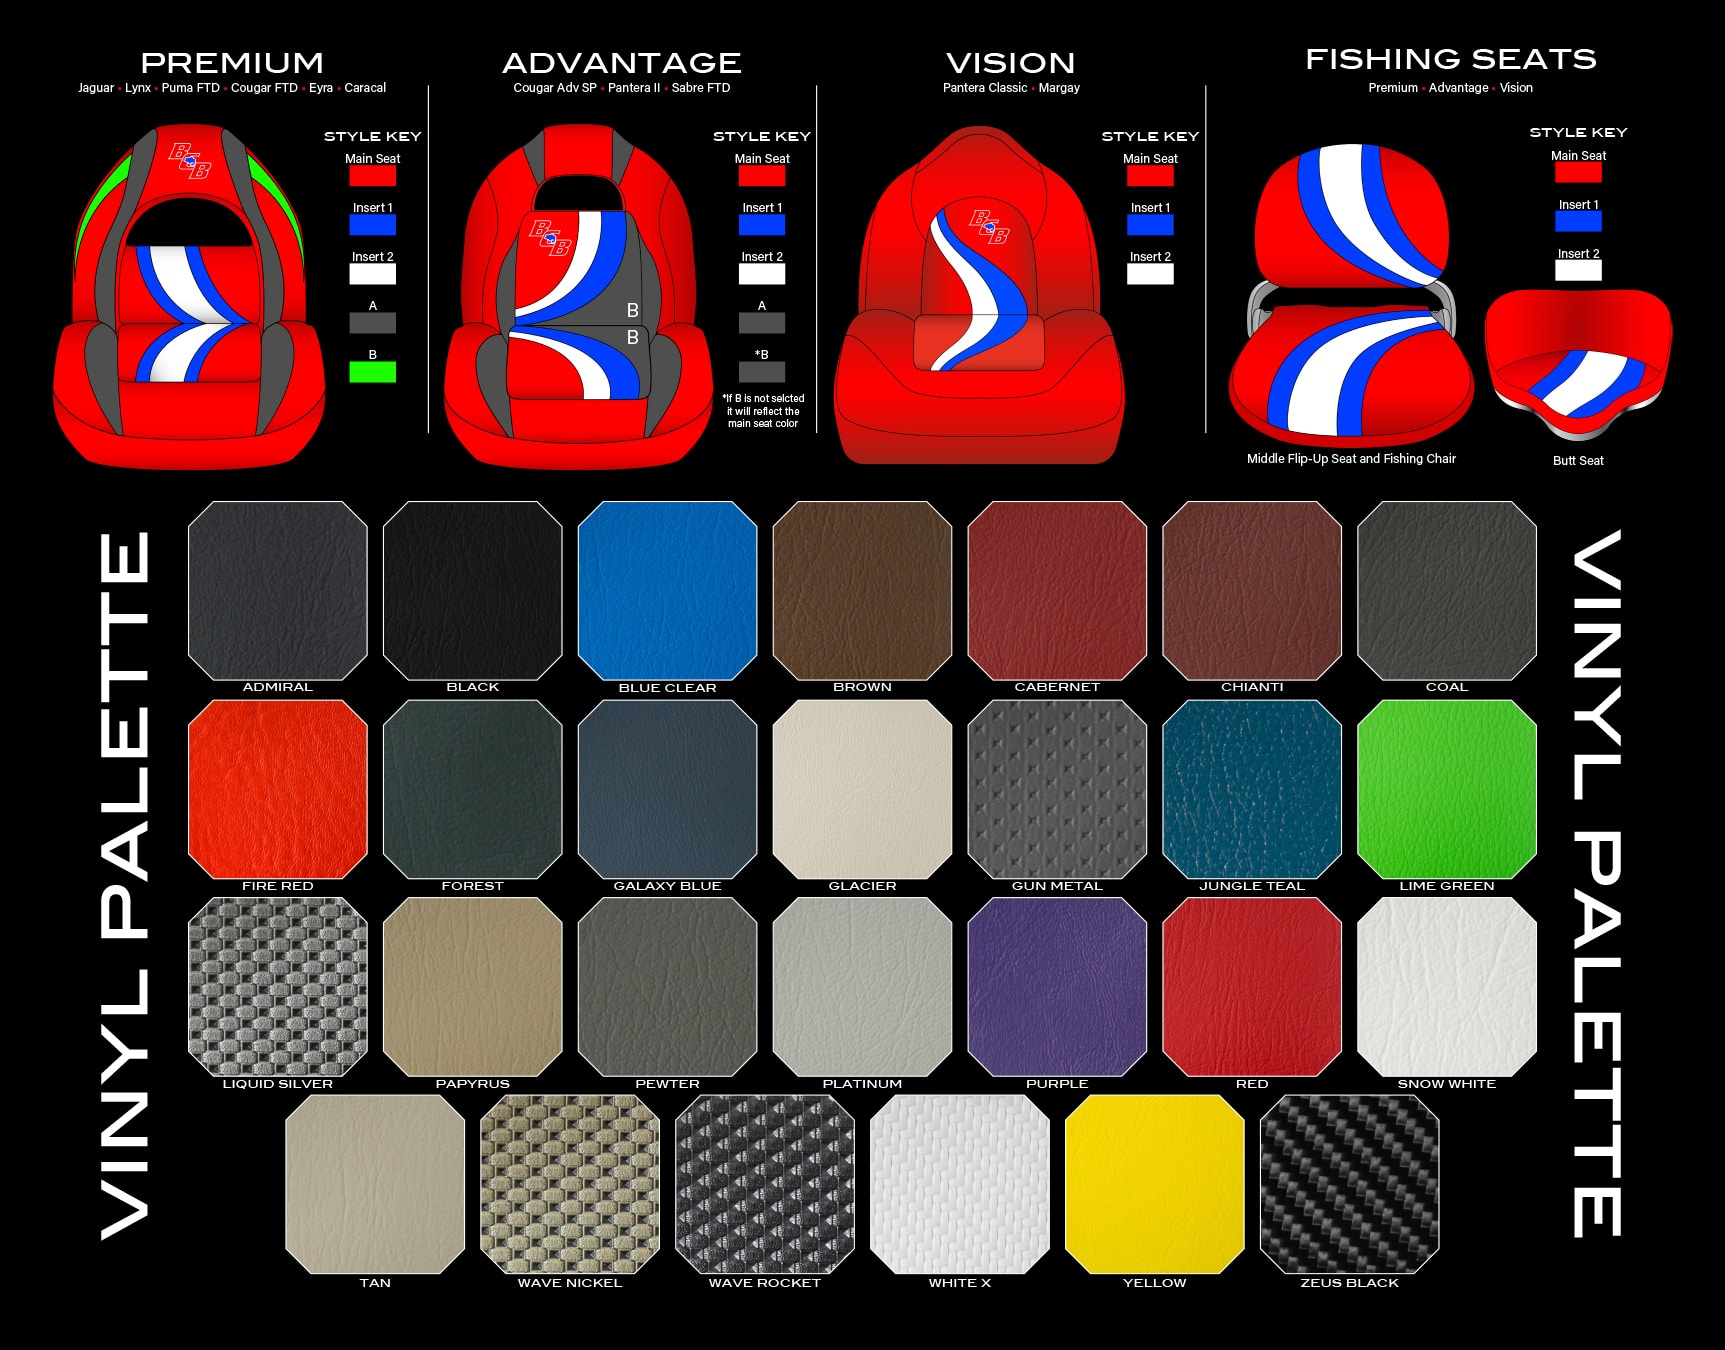 Bass Cat Seat Color Guide